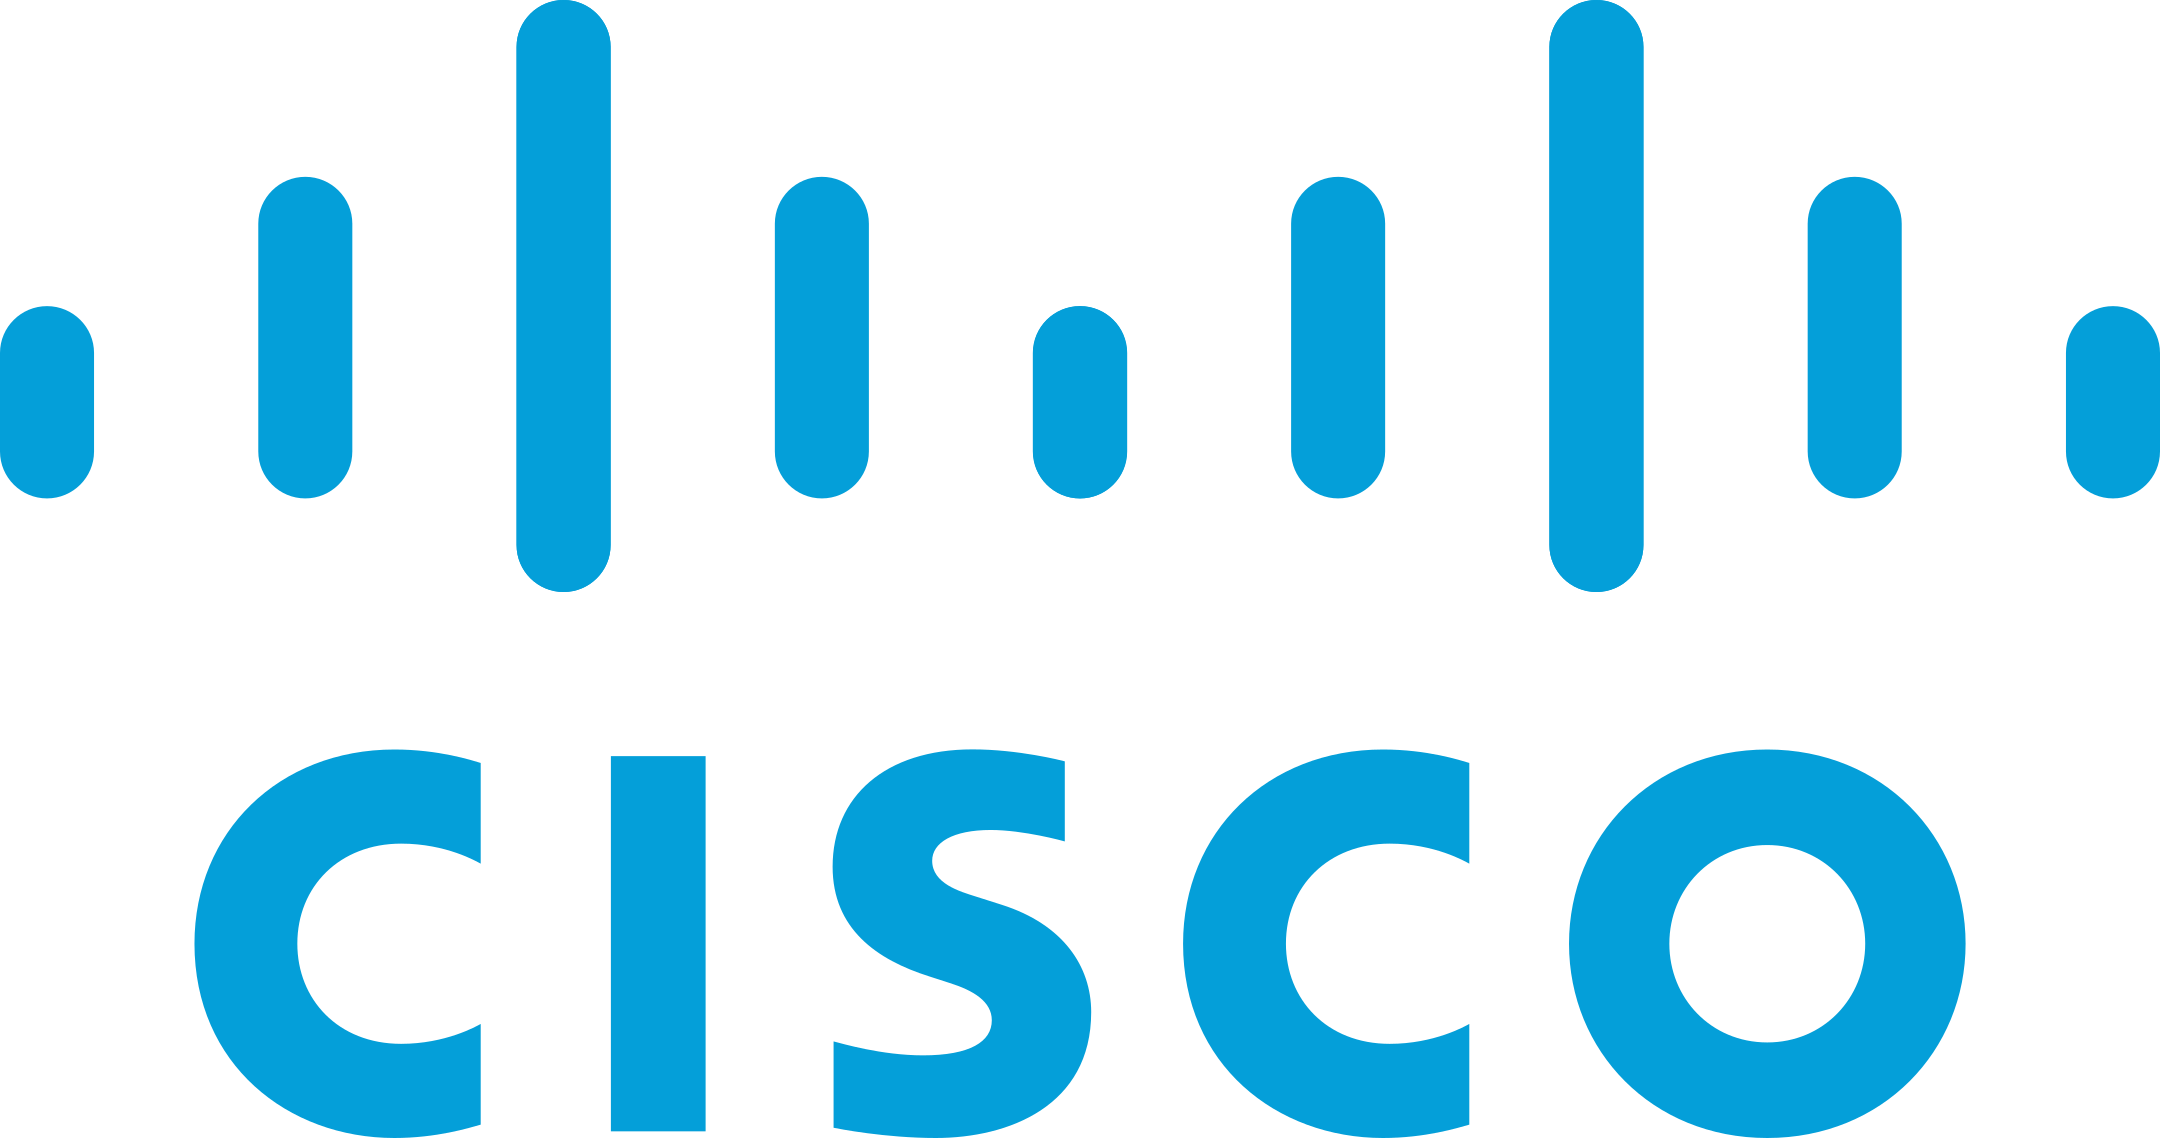 cisco logo 1 1 - Cisco Systems Logo